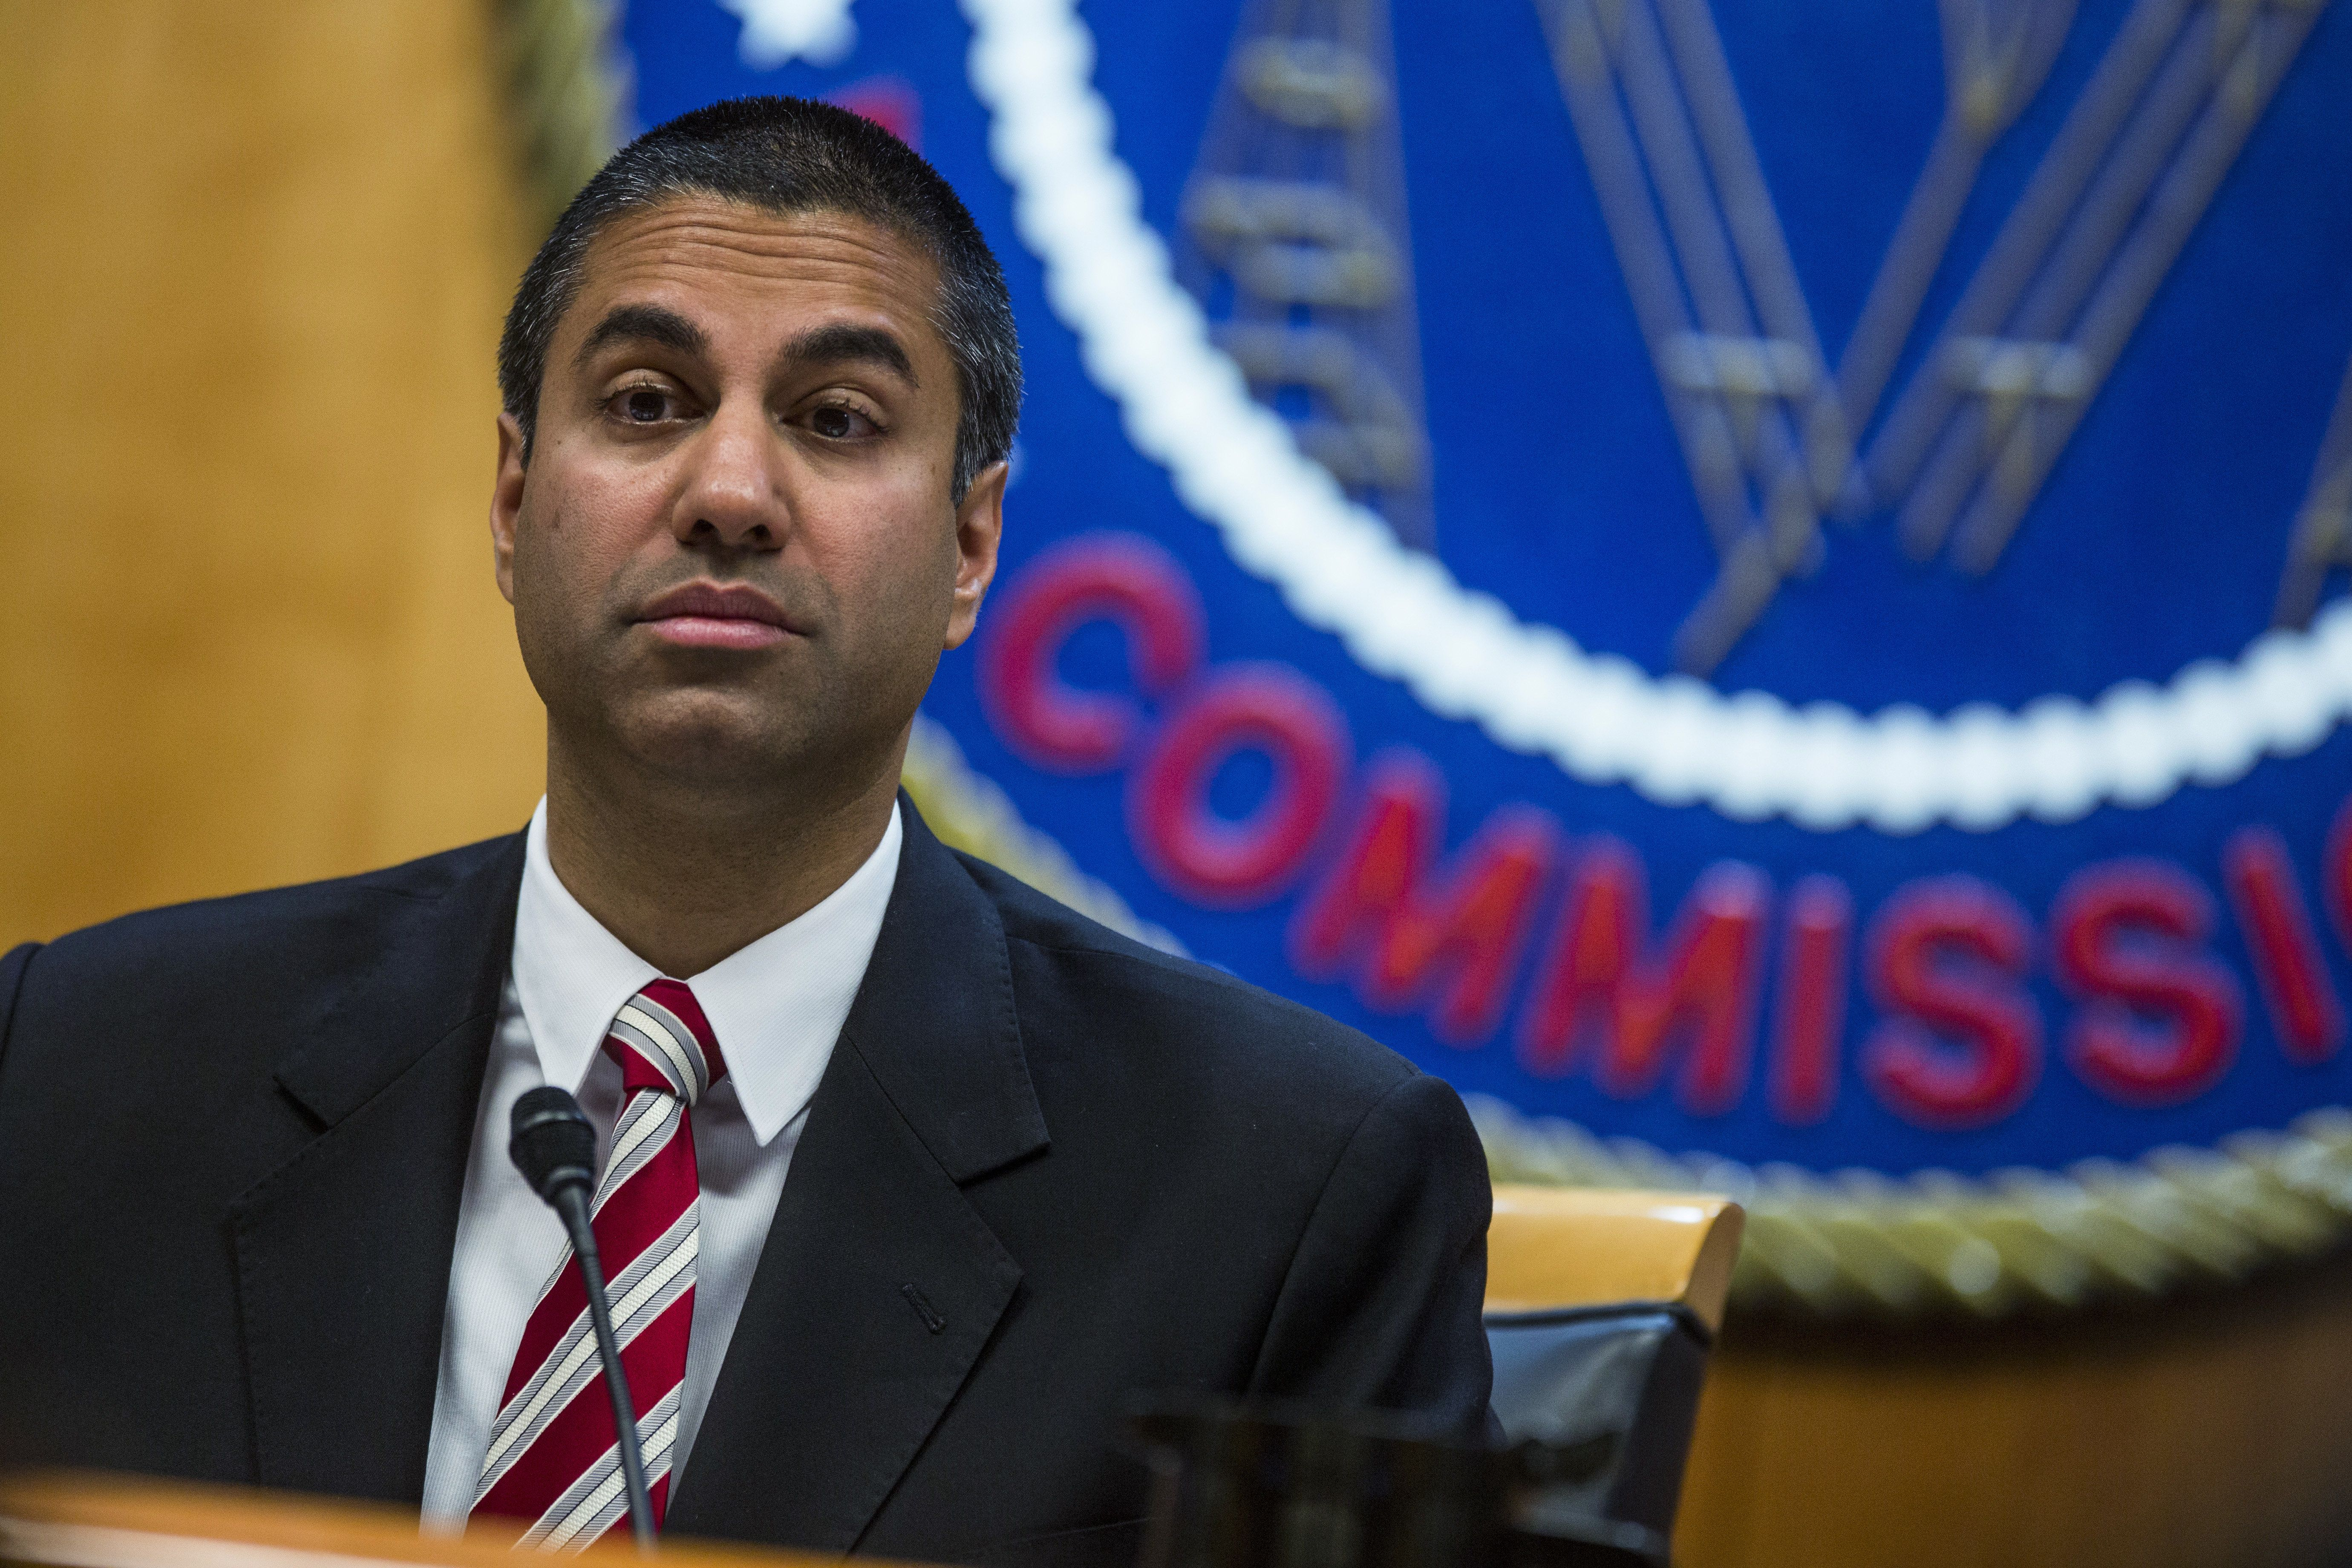 Ajit Pai, the Trump-appointed chairman of the Federal Communications Commission, speaks during an open meeting on Nov. 16.